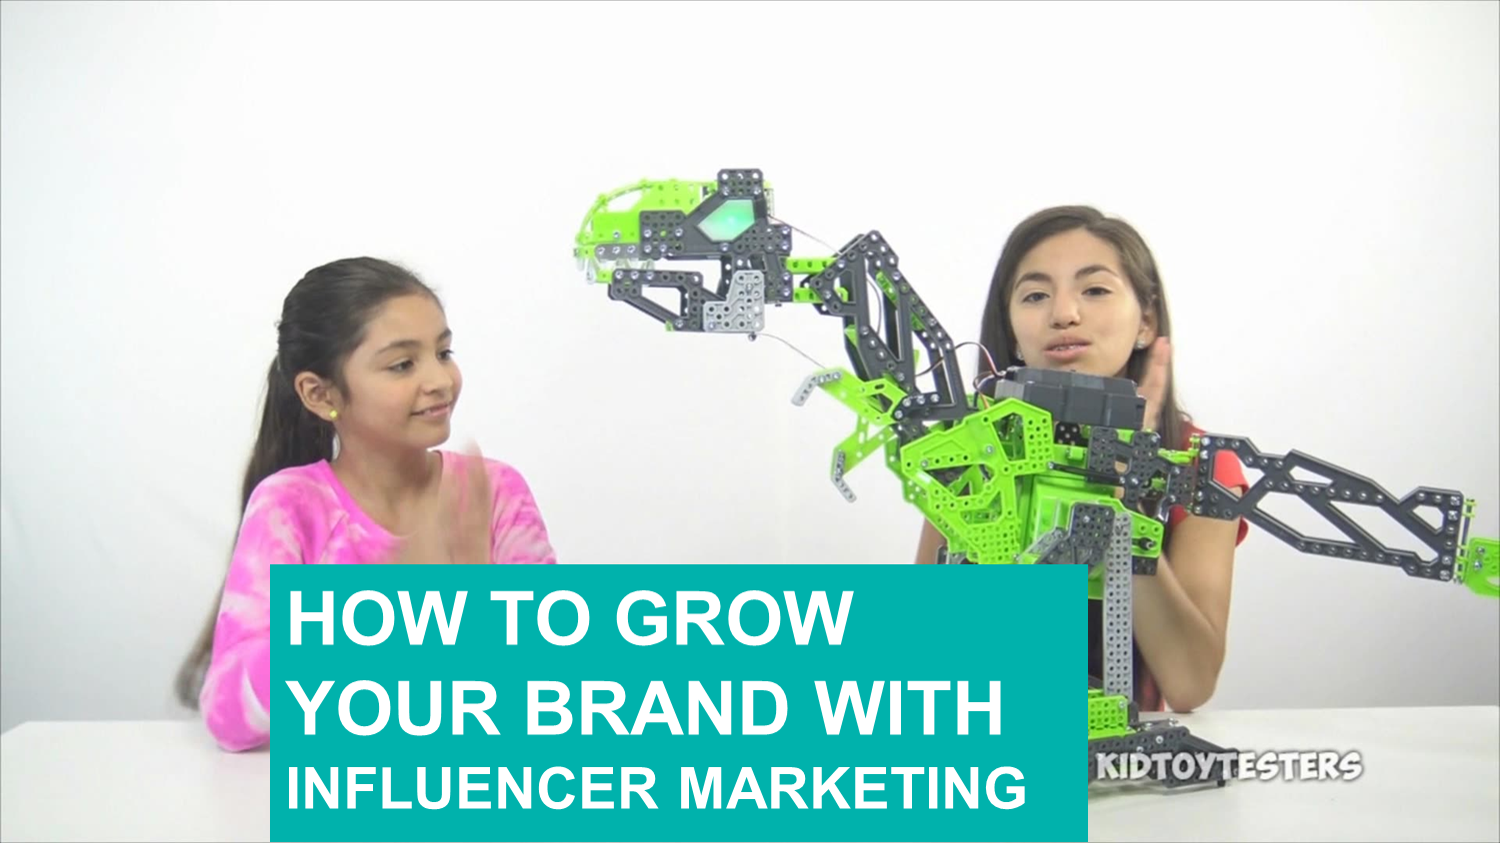 PODCAST: HOW TO GROW YOUR BRAND WITH INFLUENCER MARKETING